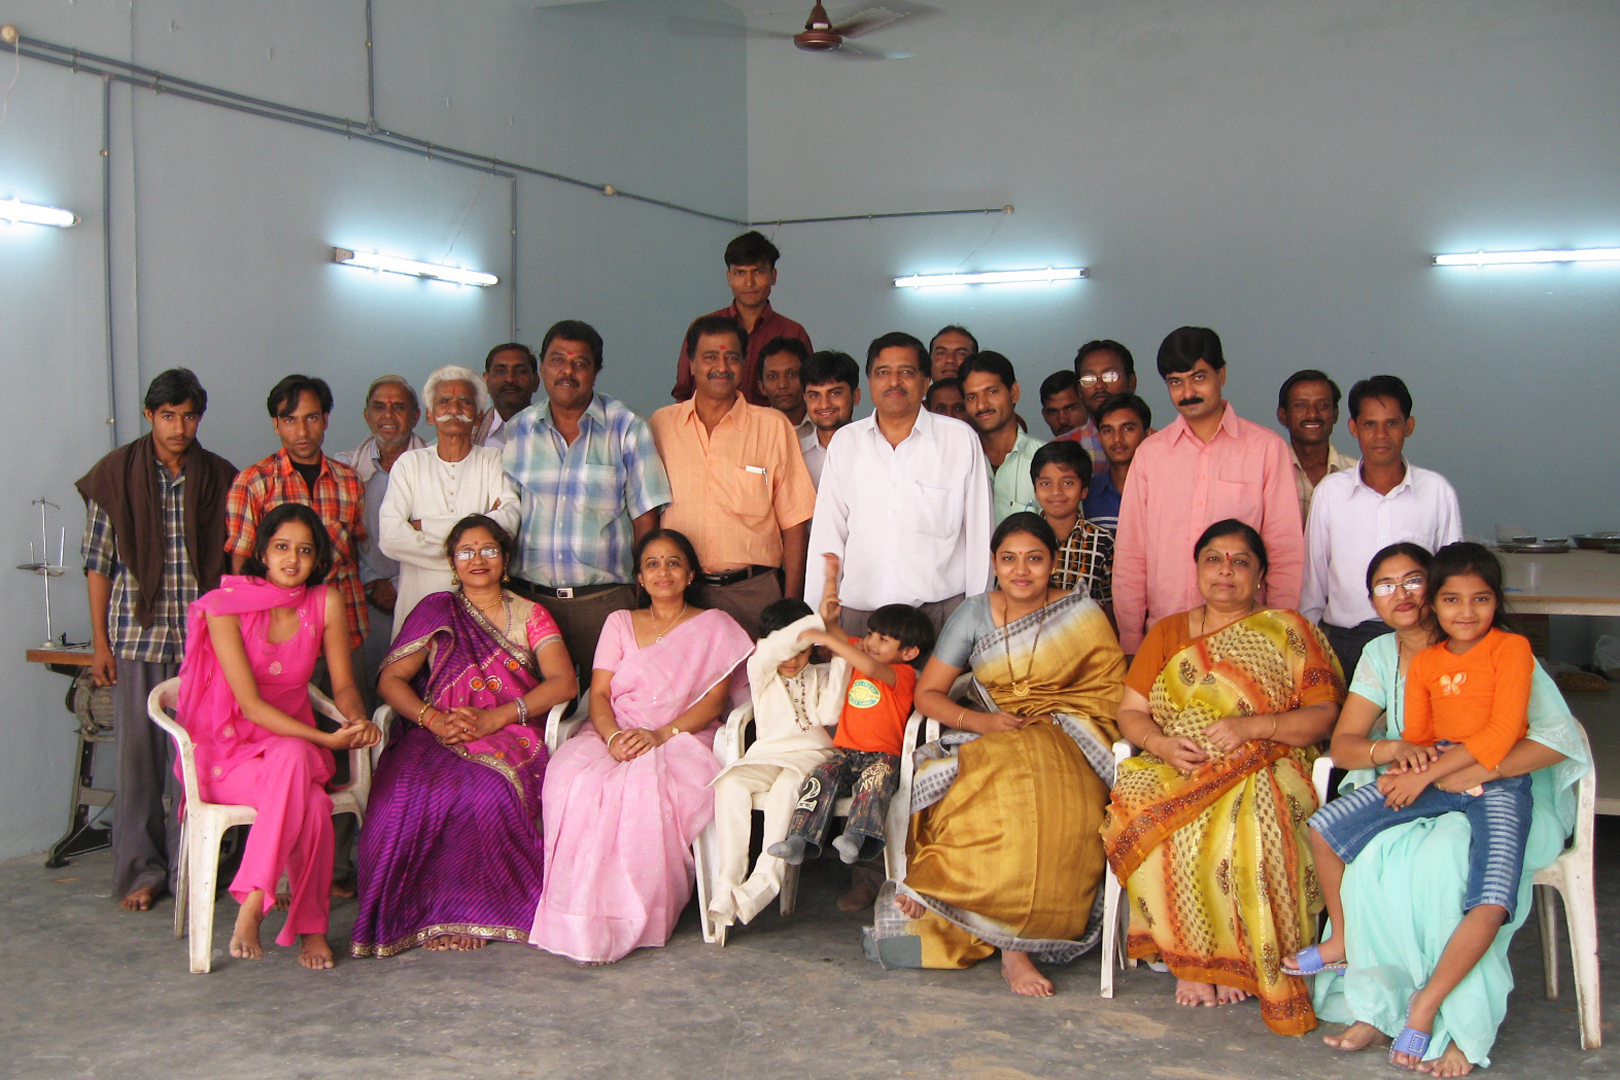 Large pic Raj Tents factory opening 2005 group photo.jpg